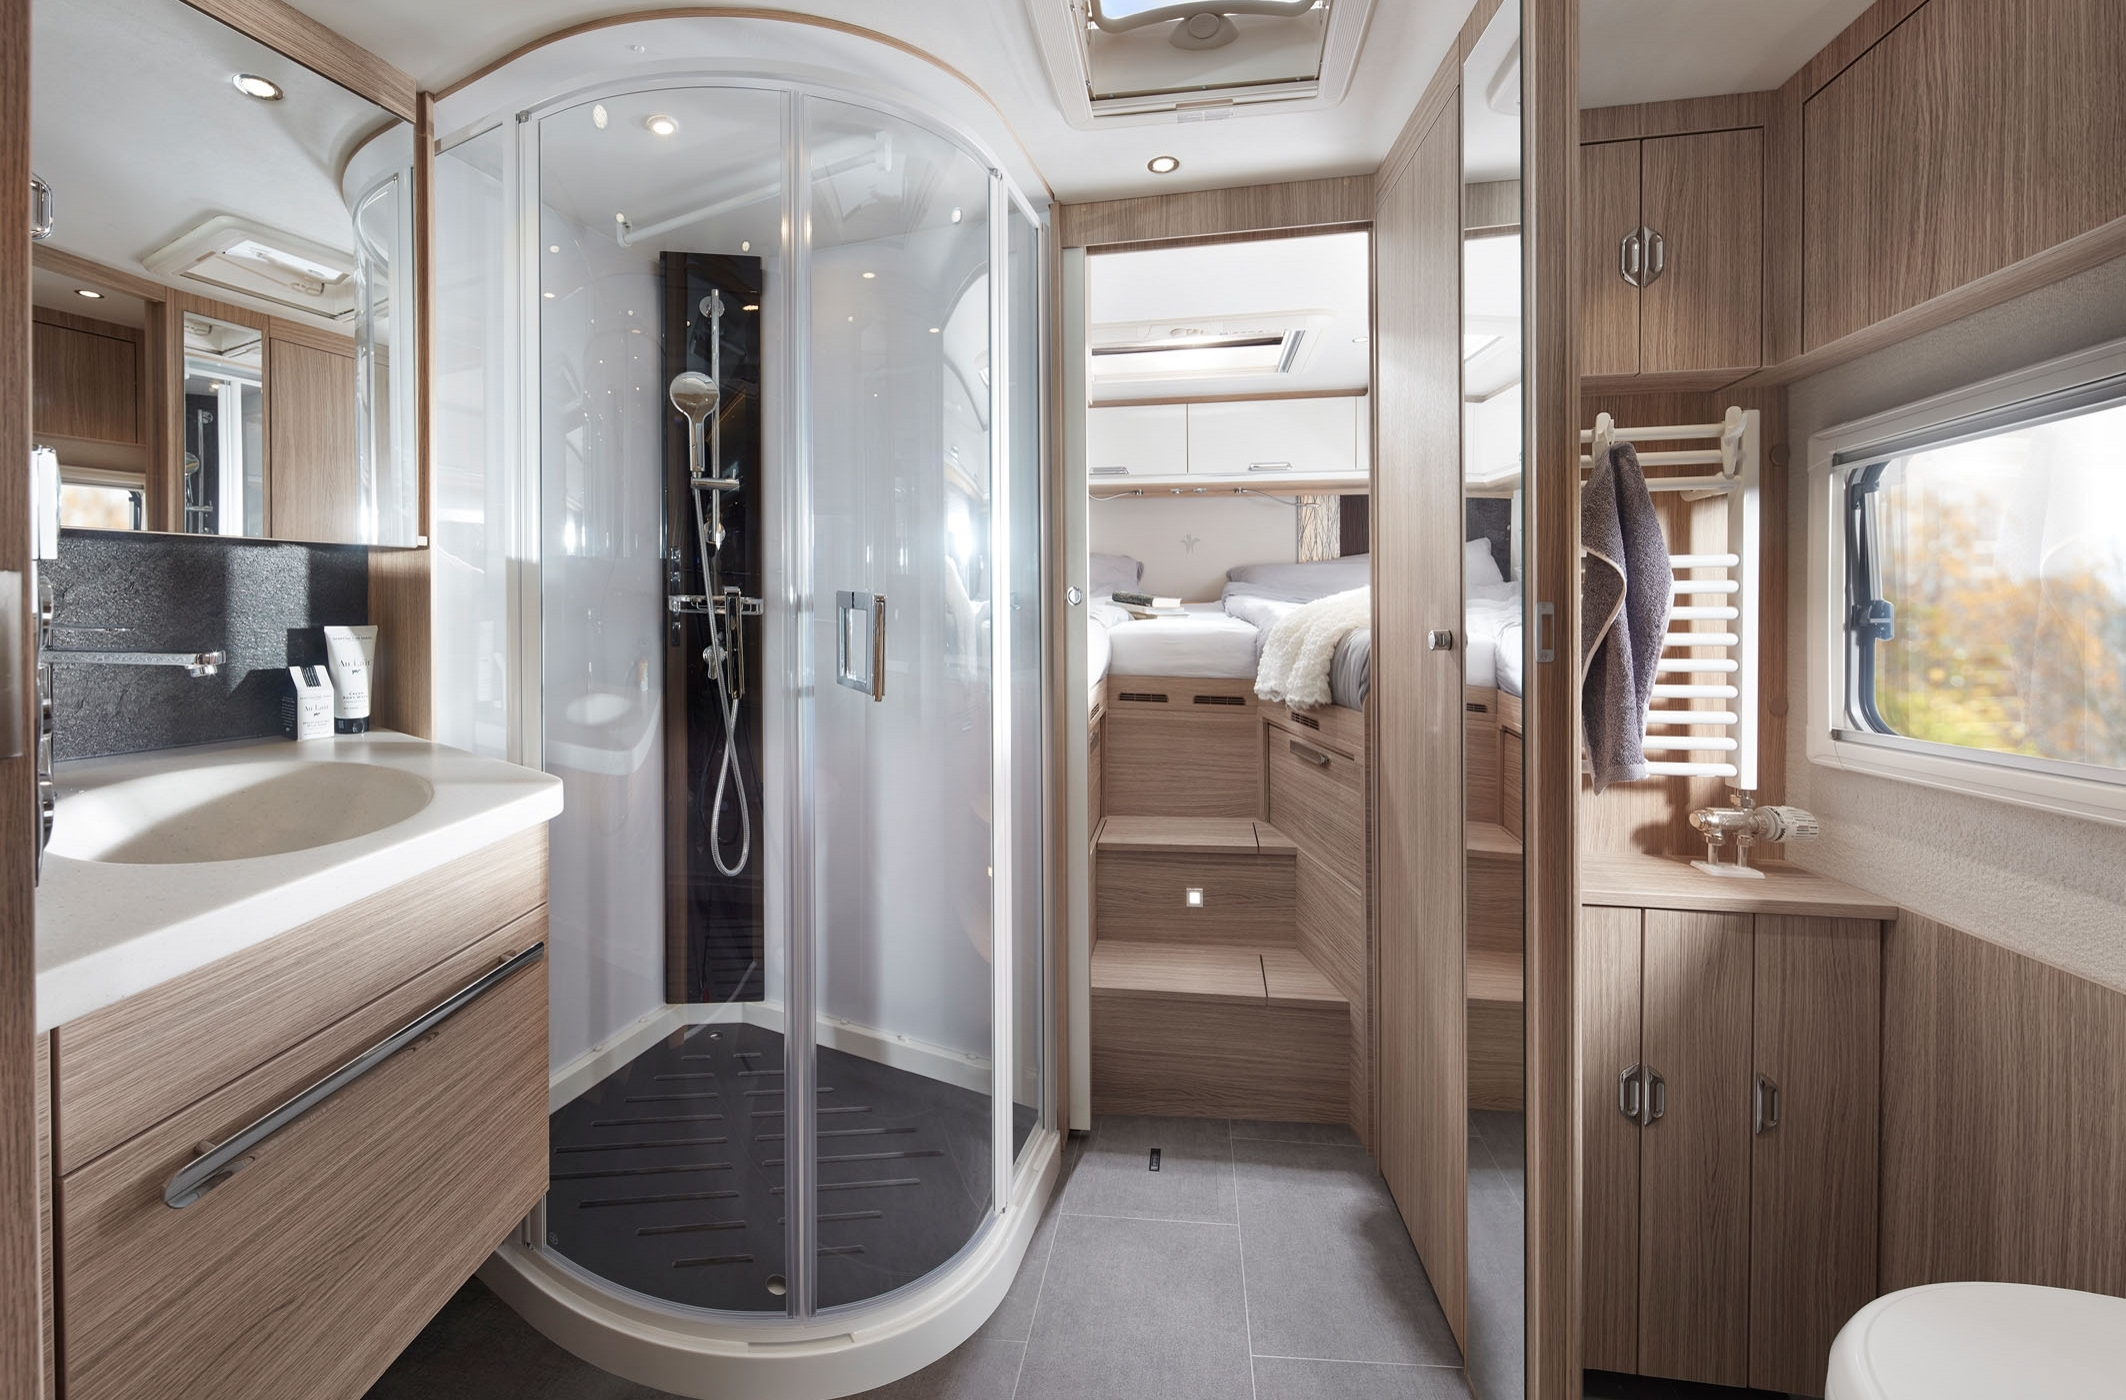 NIESMANN+BISCHOFF - Arto 88B - Comfort on board - in the luxury bath as well